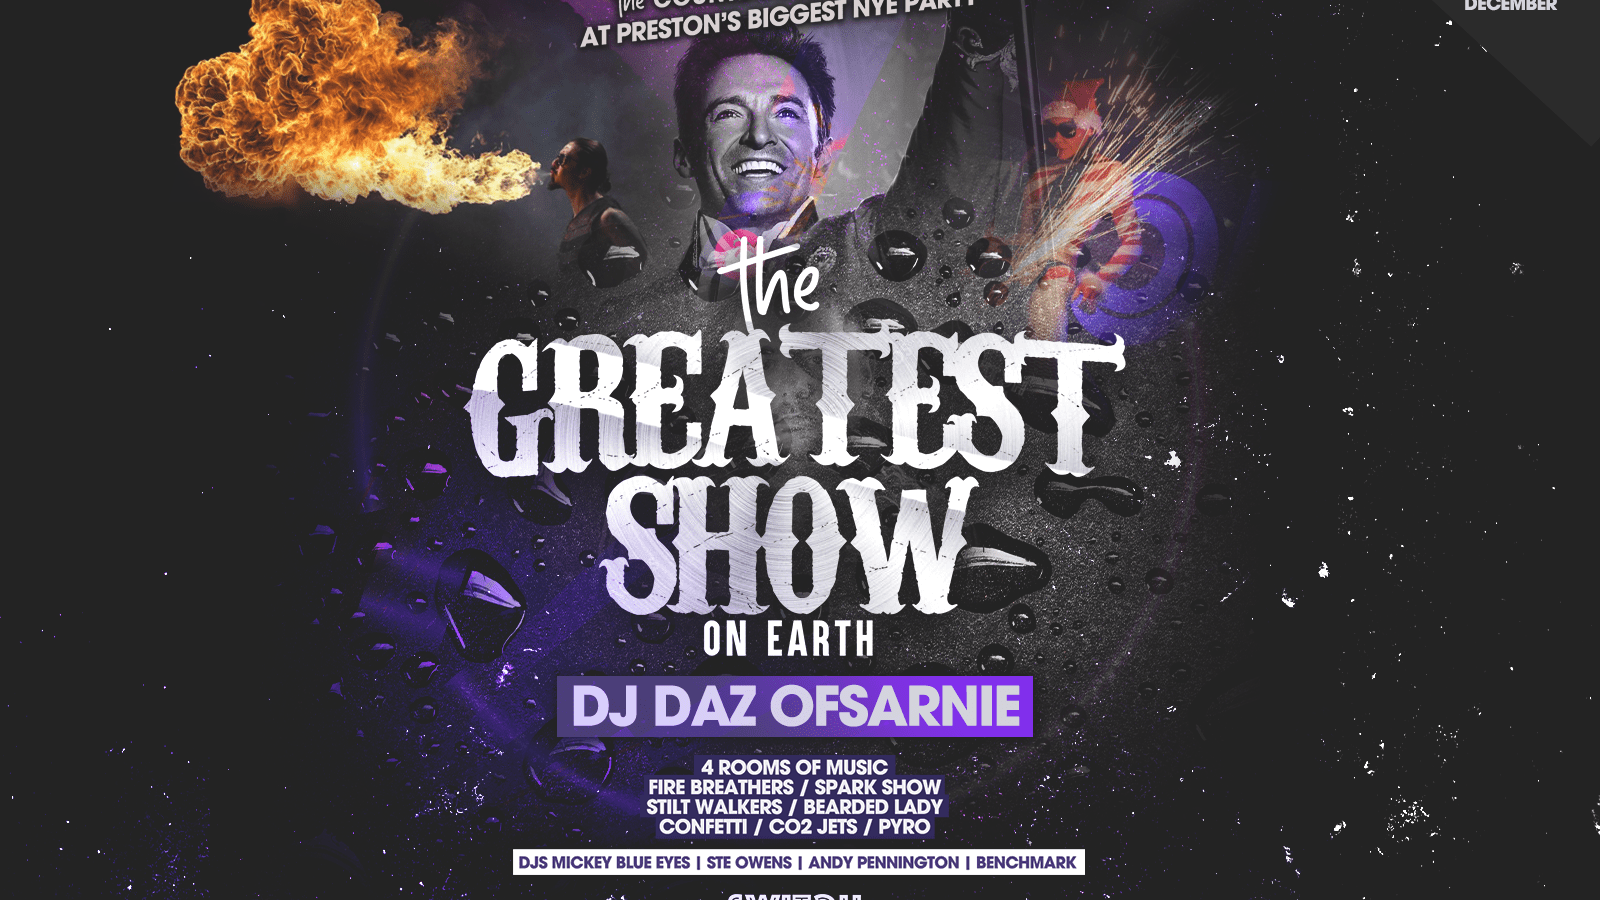 Switch Presents The Greatest Show NYE / Dec 31st